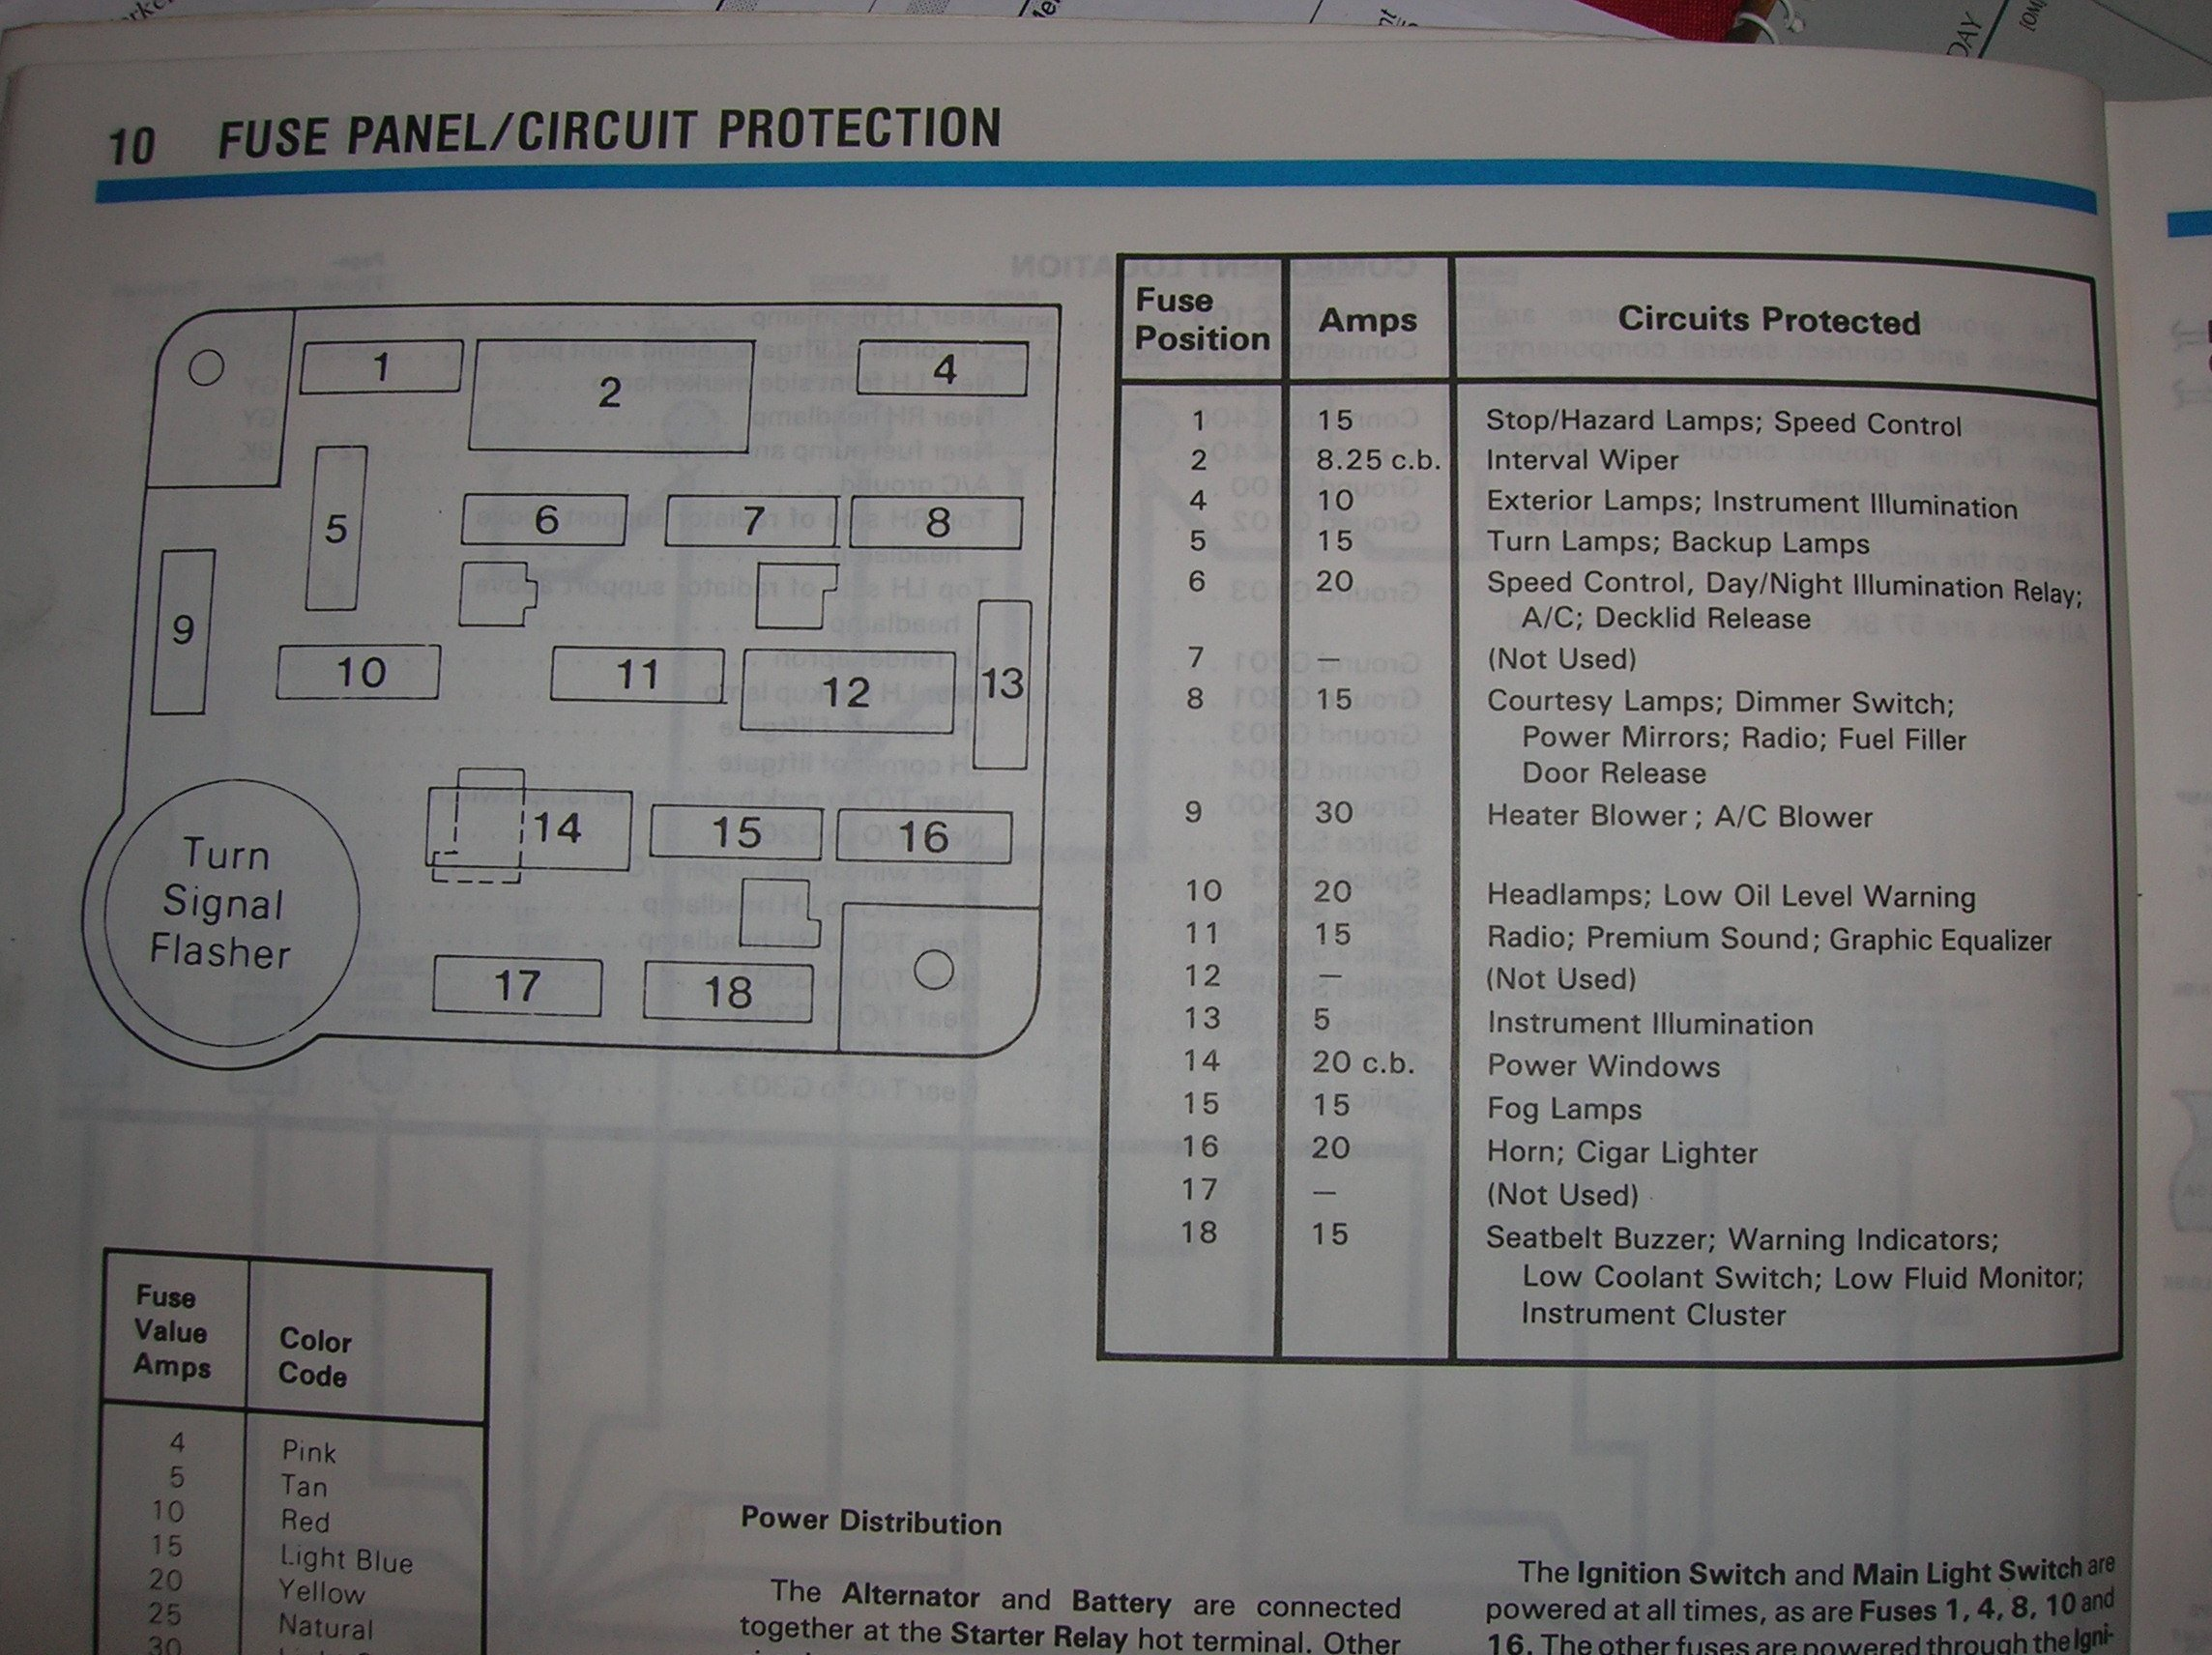 fuse panel 1986 mustang 5 0l ford mustang forum 89 Ford Bronco II Parts 89 Ford  Bronco Specifications